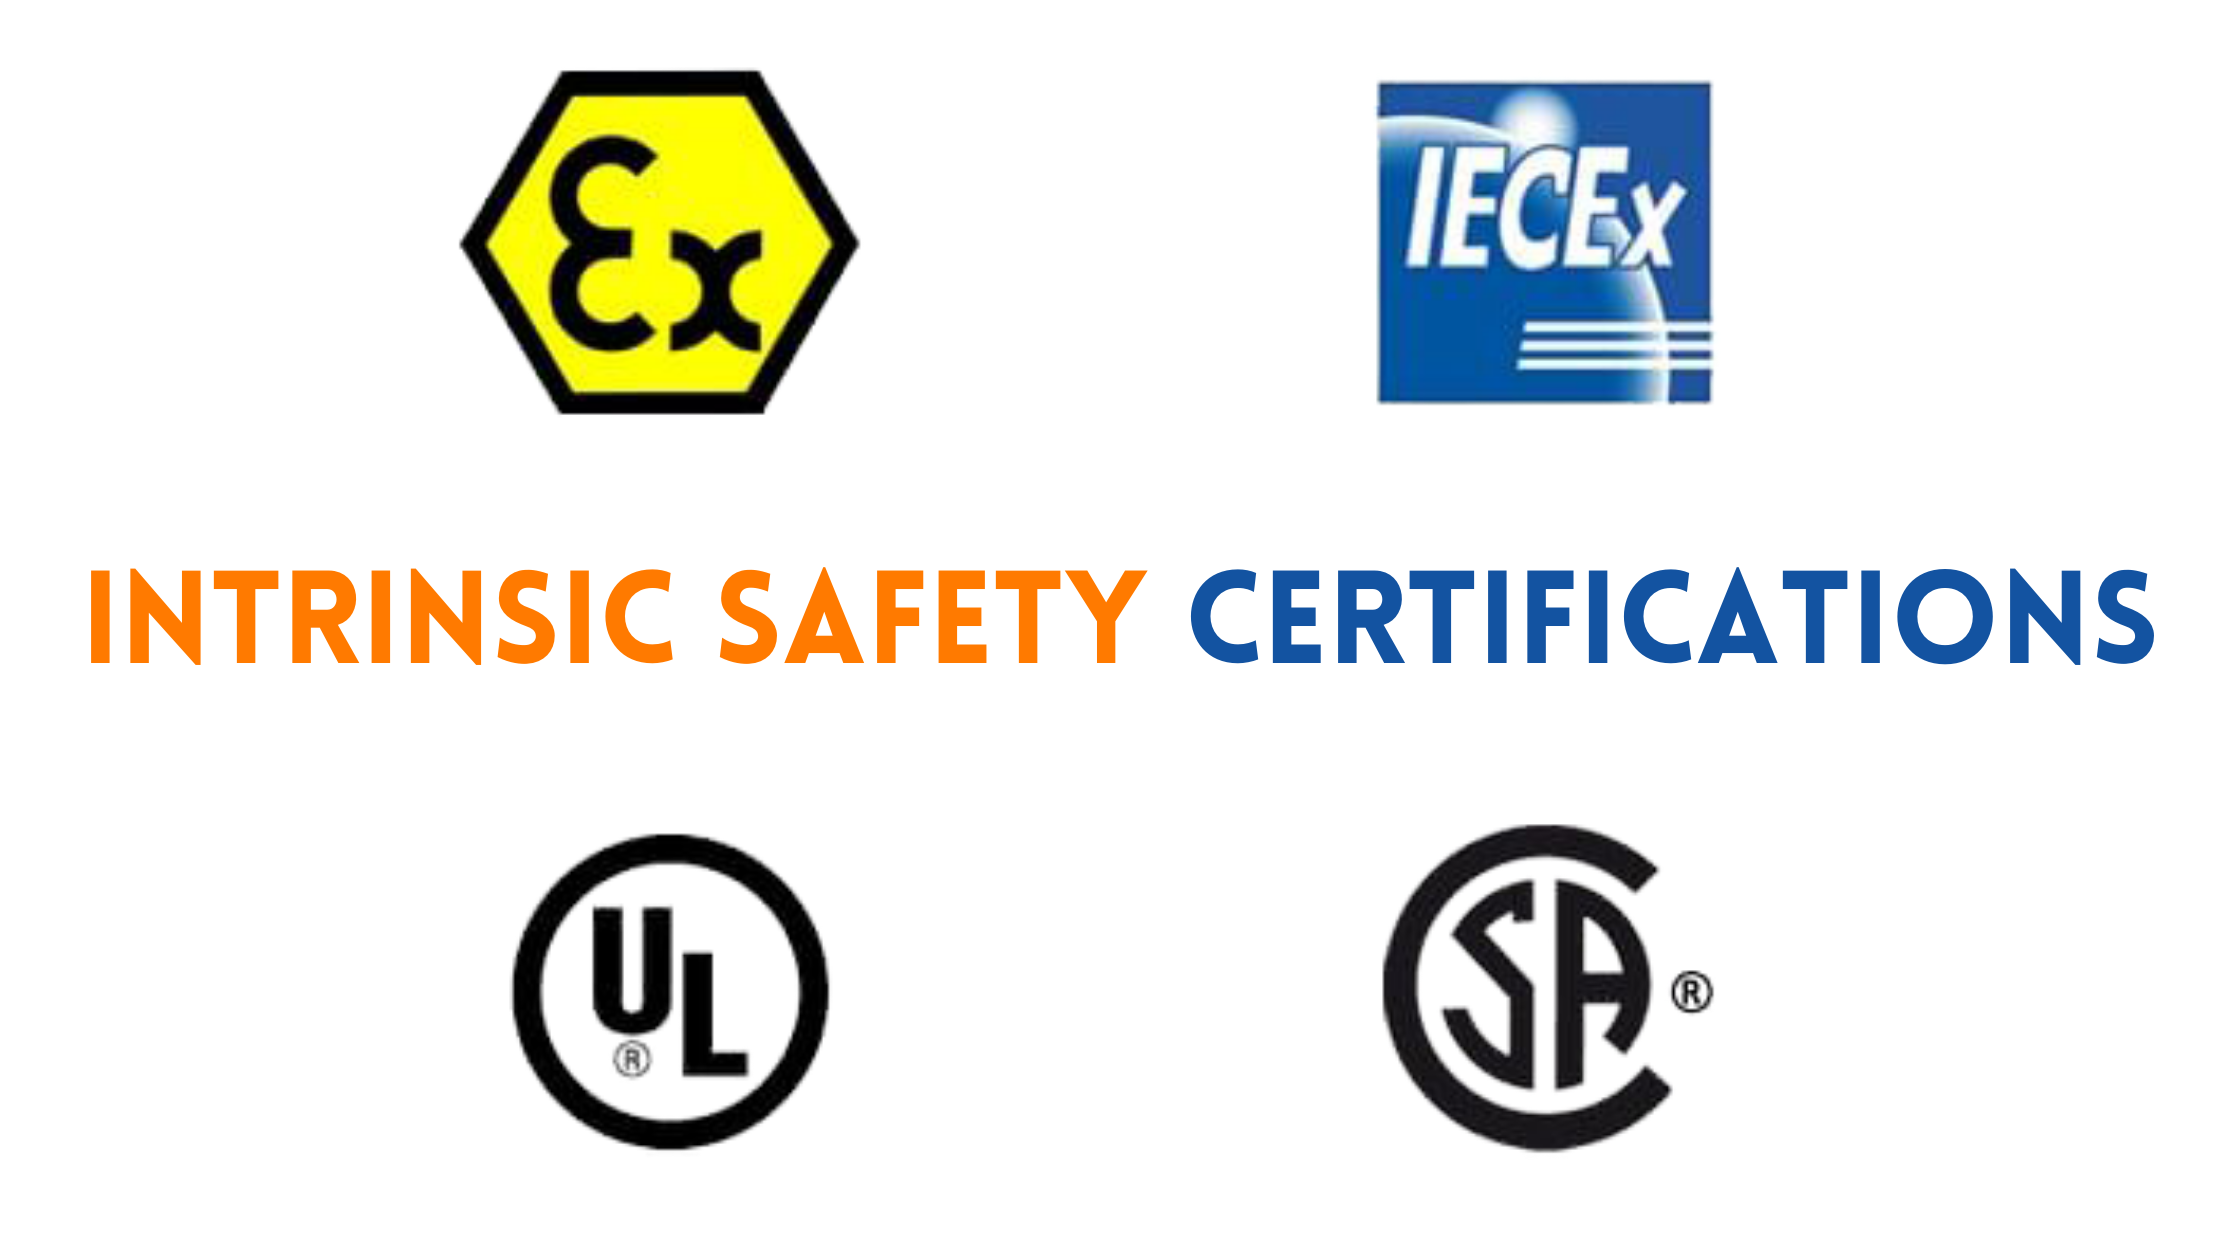 How Do You Know Your Industrial Headsets are Intrinsically Safe?